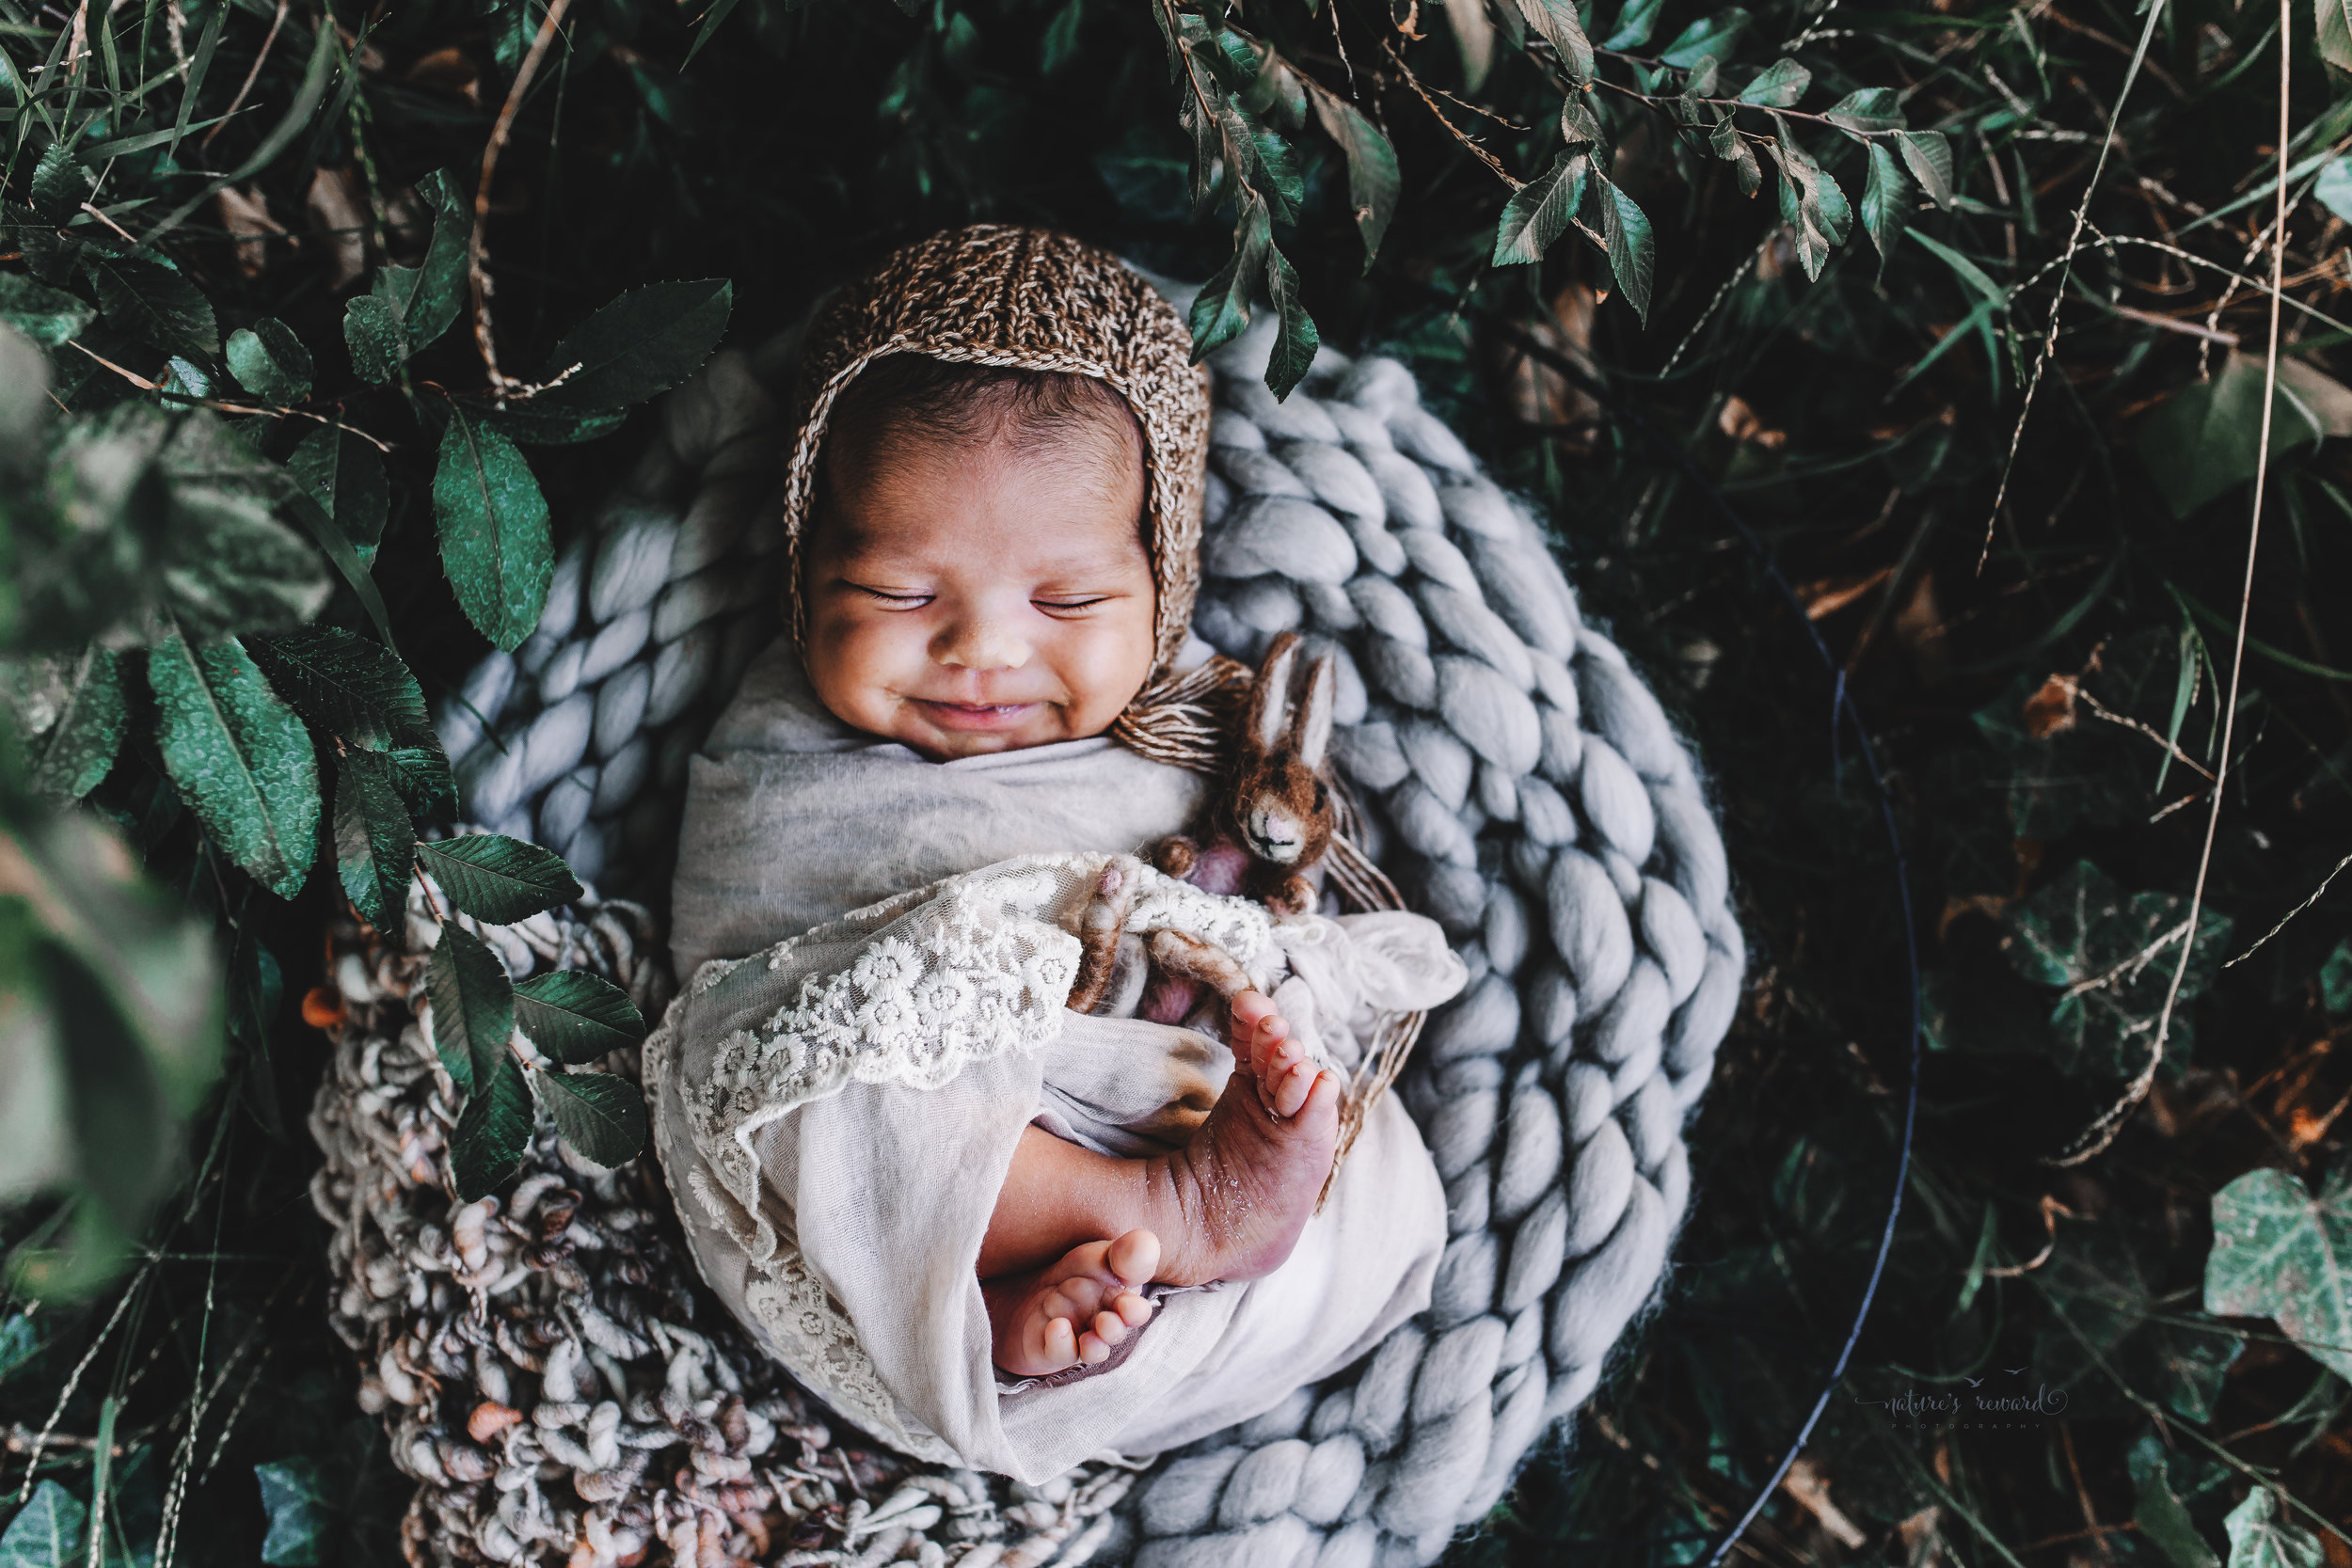 Newborn baby girl in tan lace swaddle and a brown knit bonnets holding a sweet felted rabbit smiling in the garden- a portrait by Nature's Reward Photography